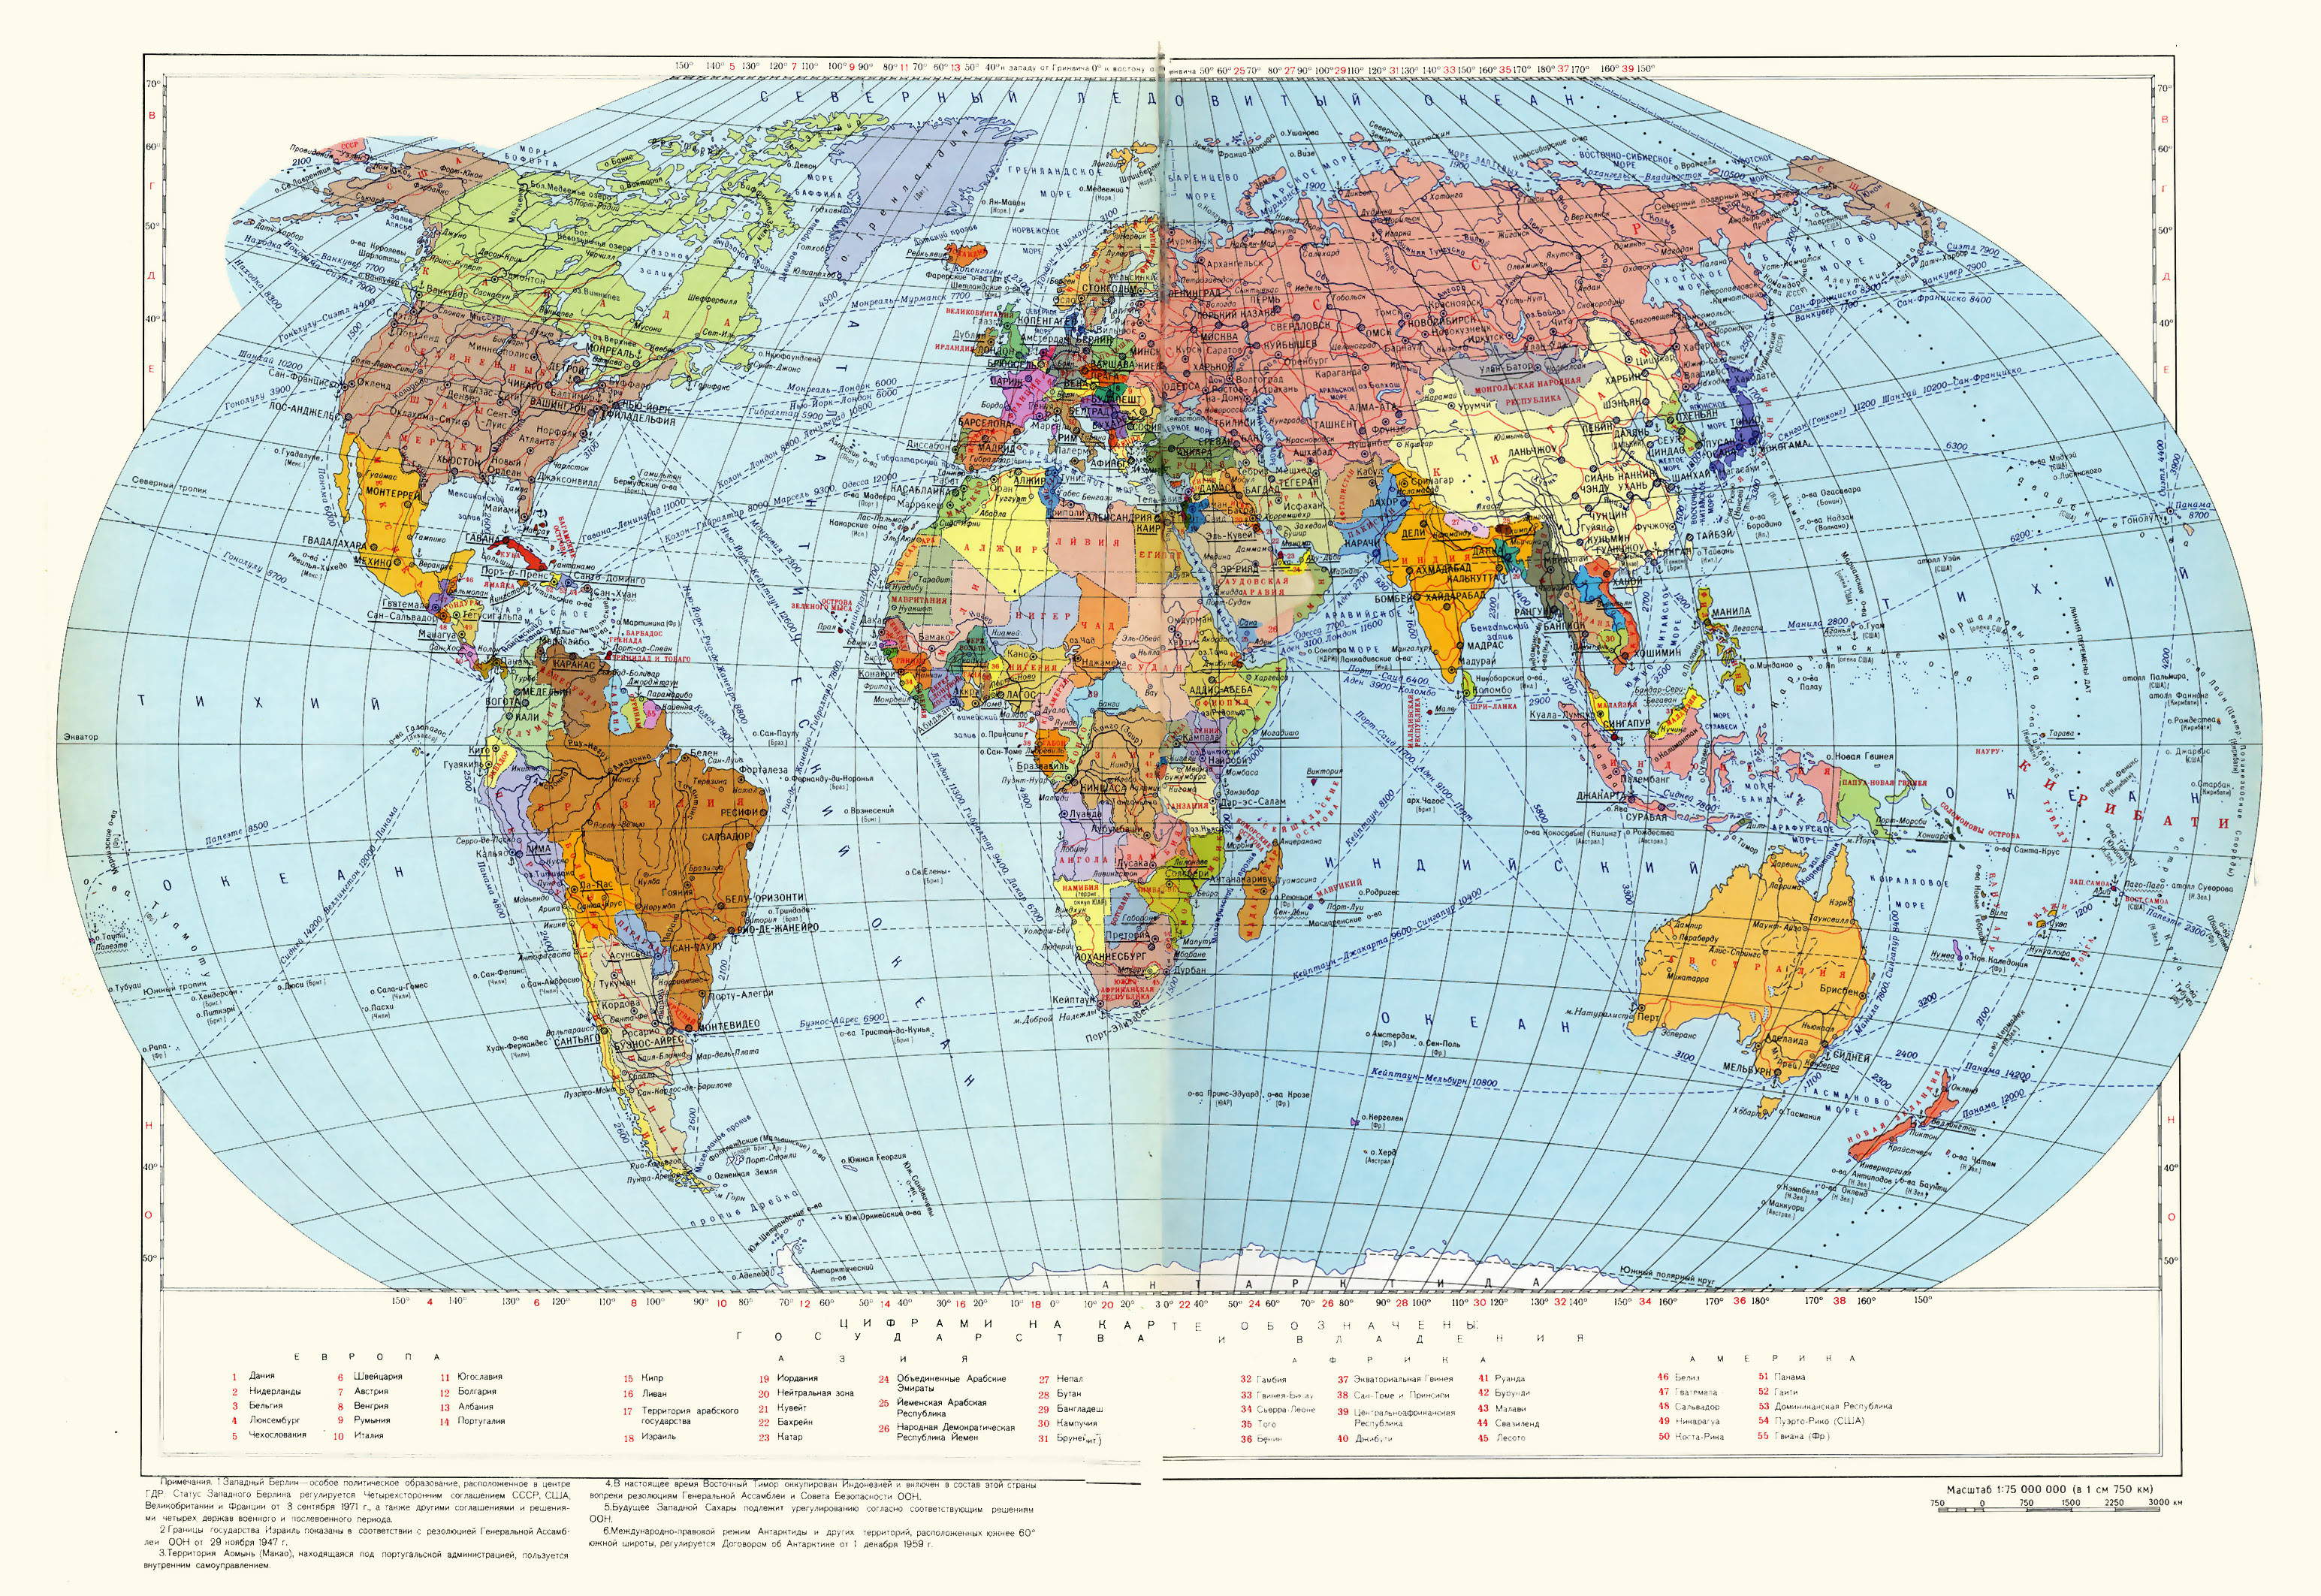 A Political Map Of The World.Large Detailed Political Map Of The World Since Soviet Times World